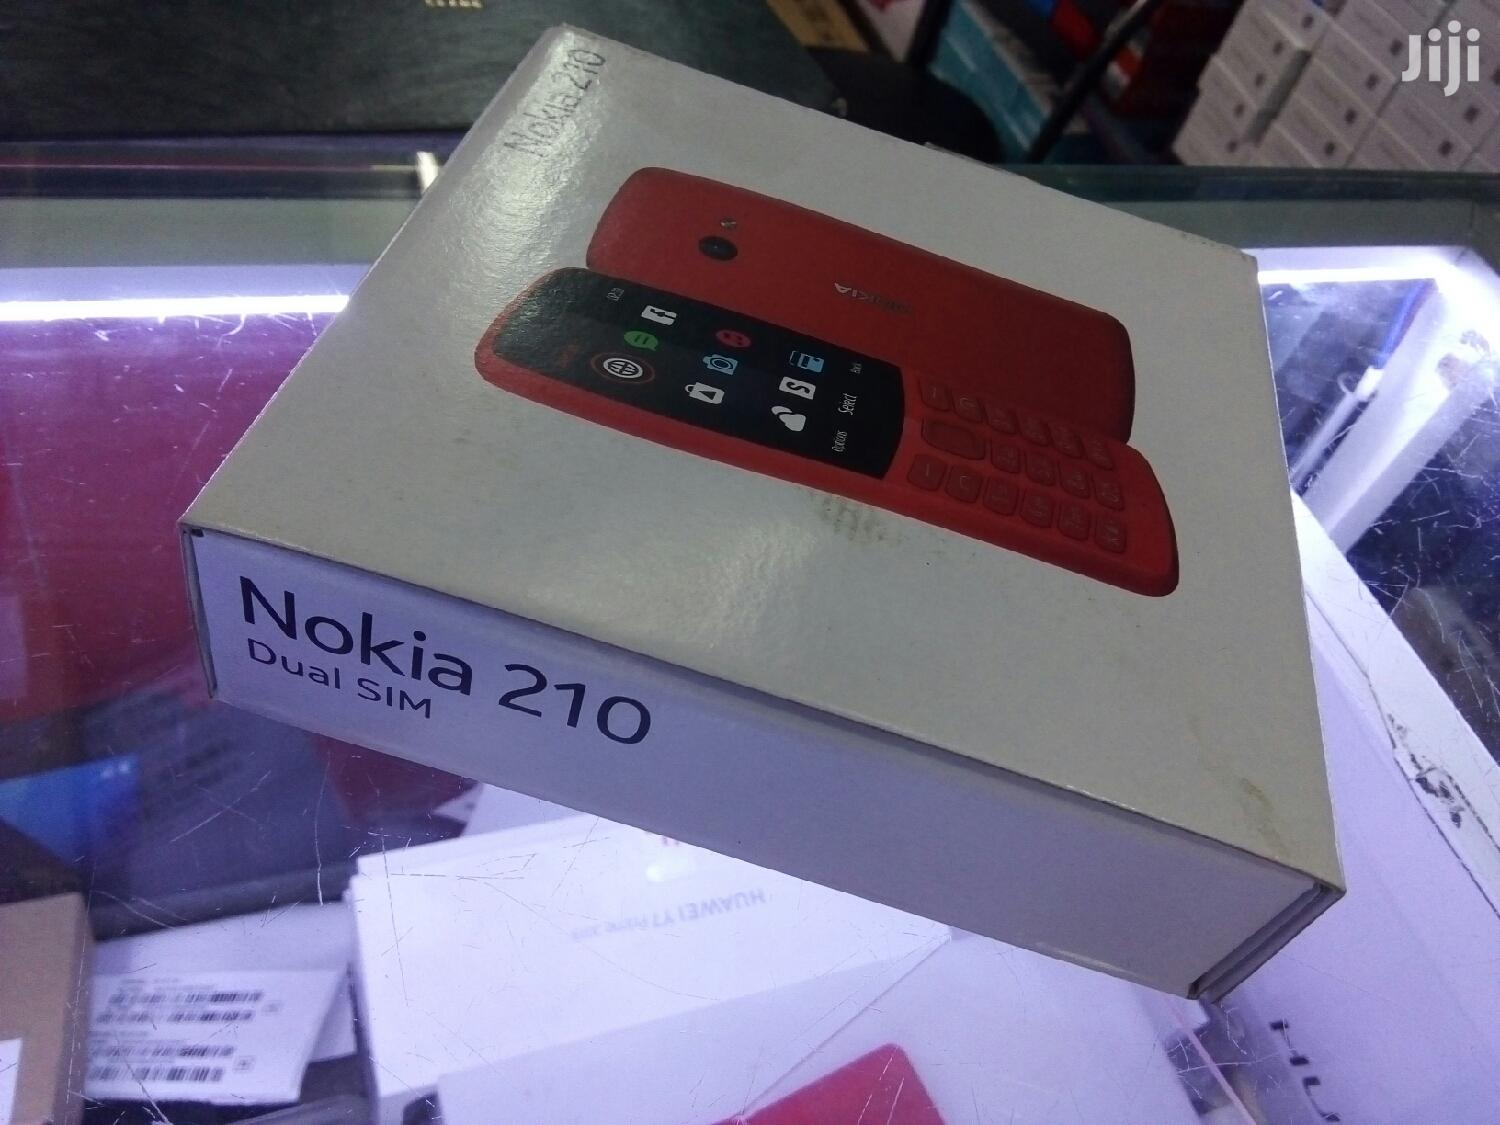 New Nokia 2100 Black | Mobile Phones for sale in Nairobi Central, Nairobi, Kenya